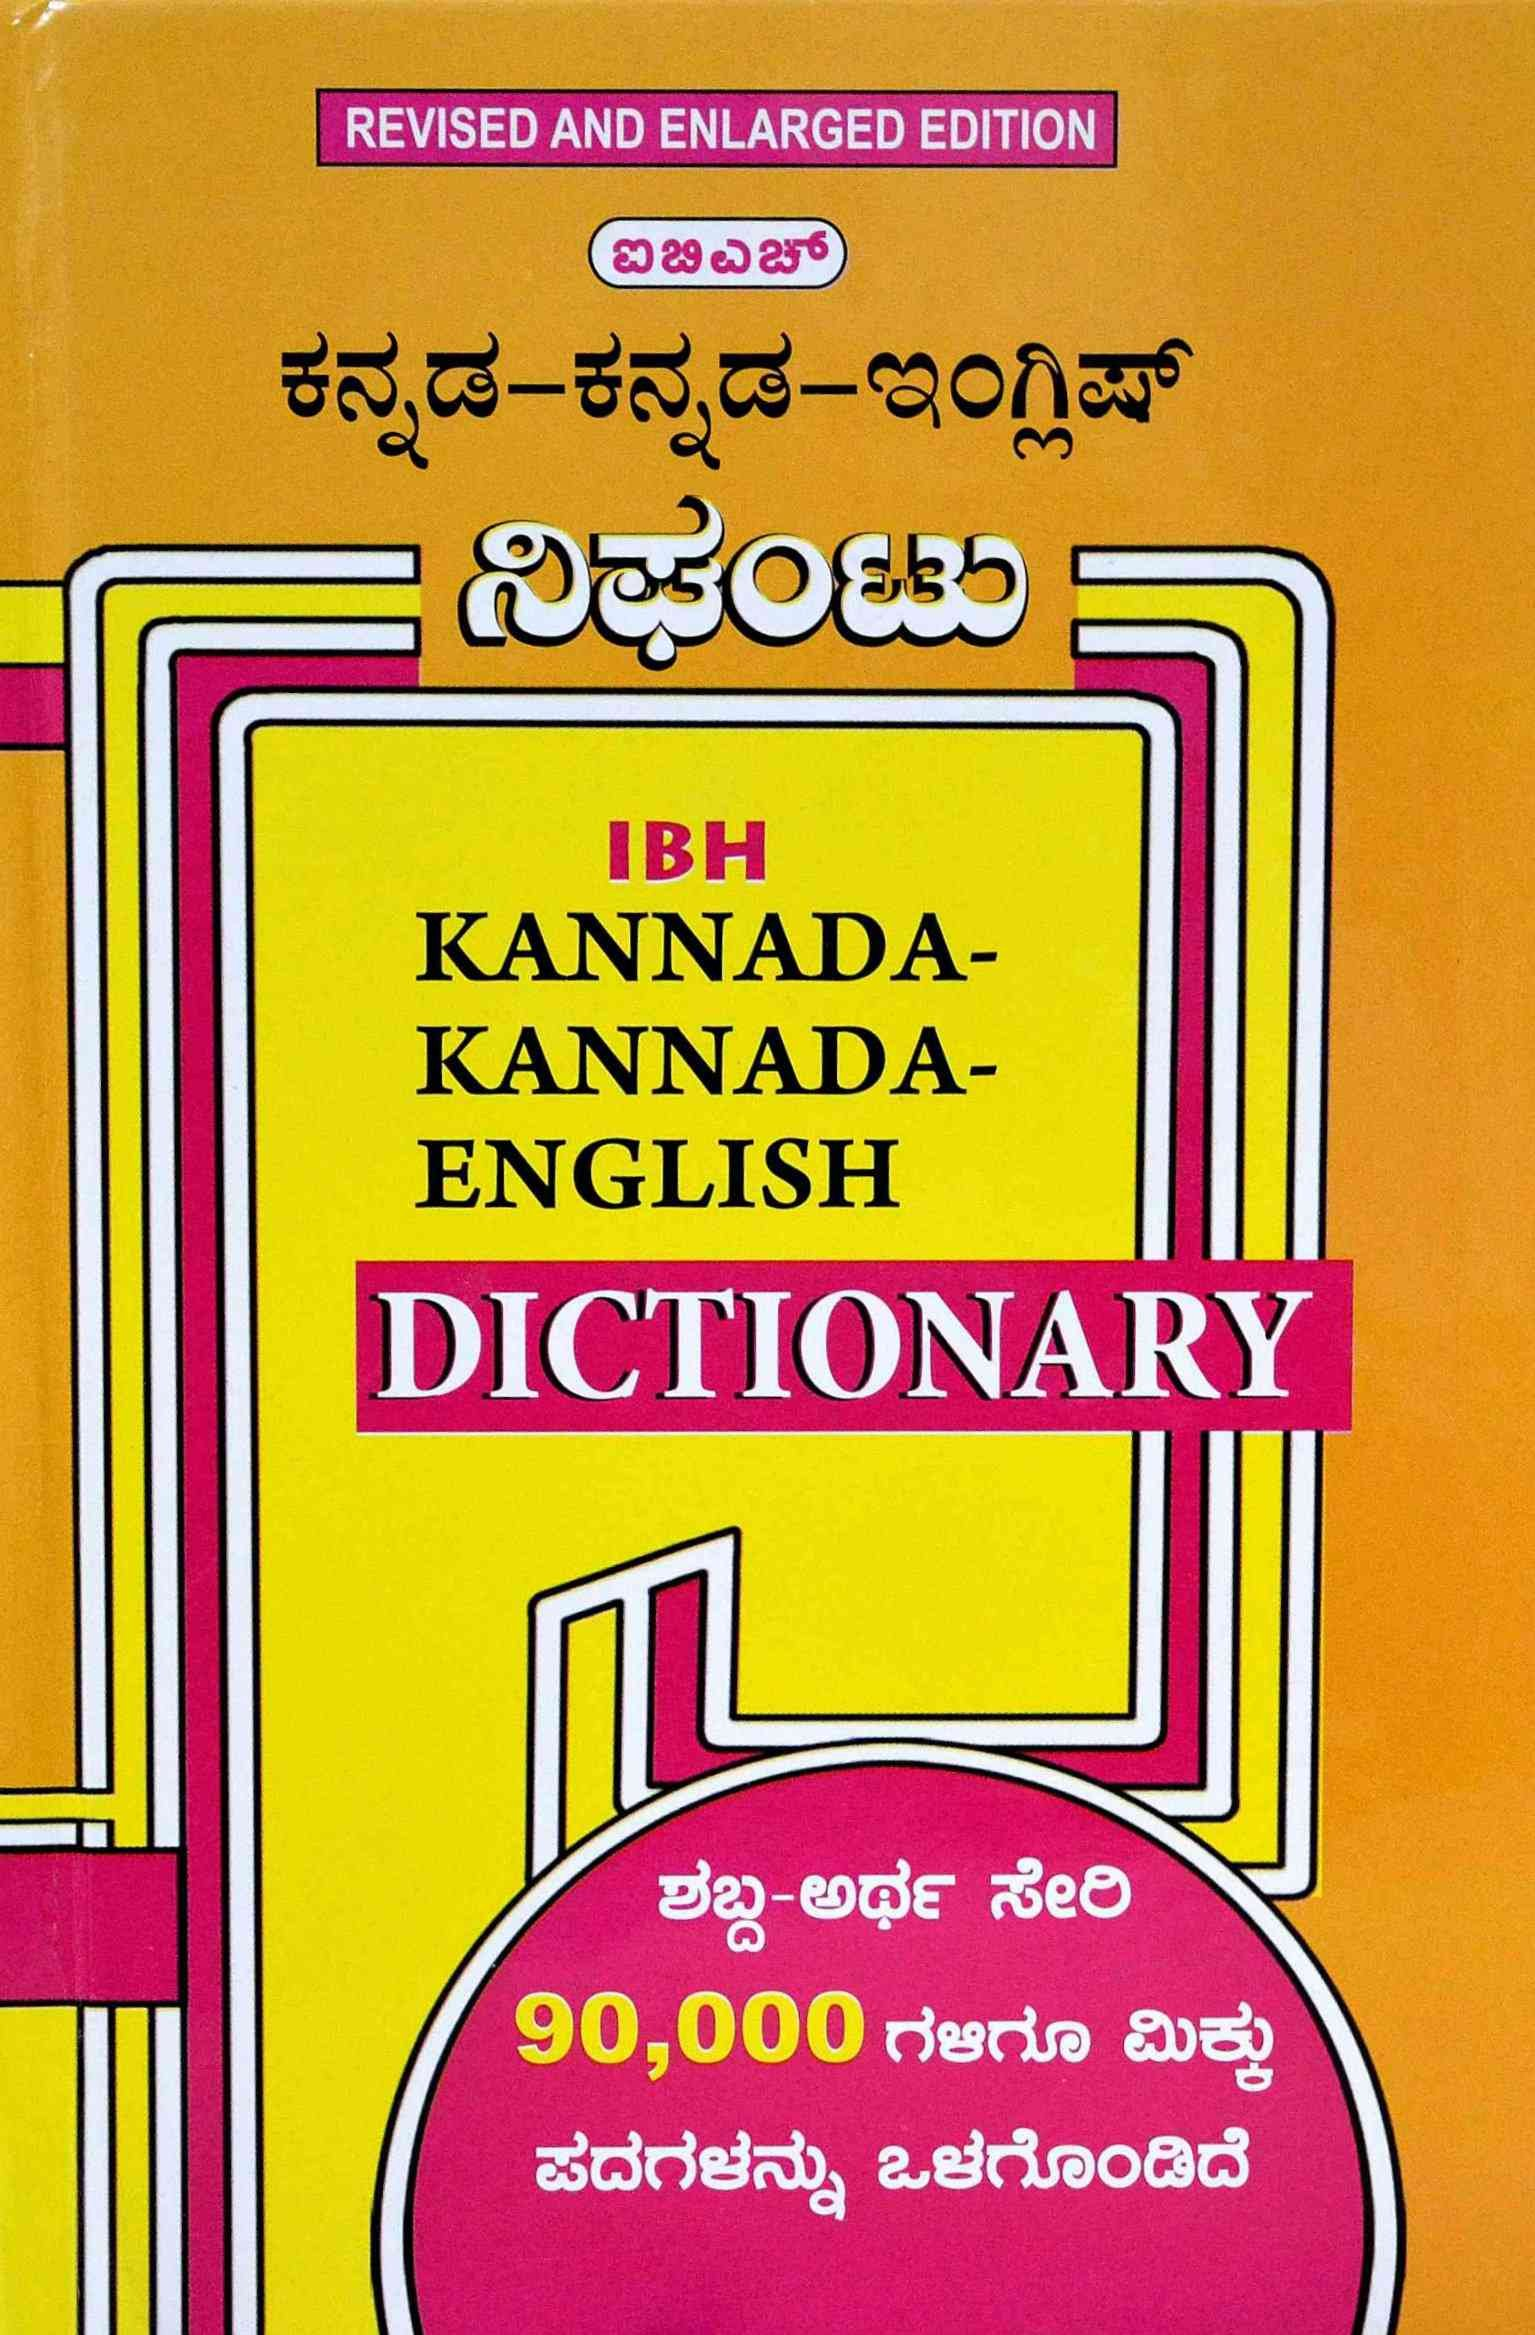 Buy IBH Kannada-Kannada-English Dictionary Book Online at